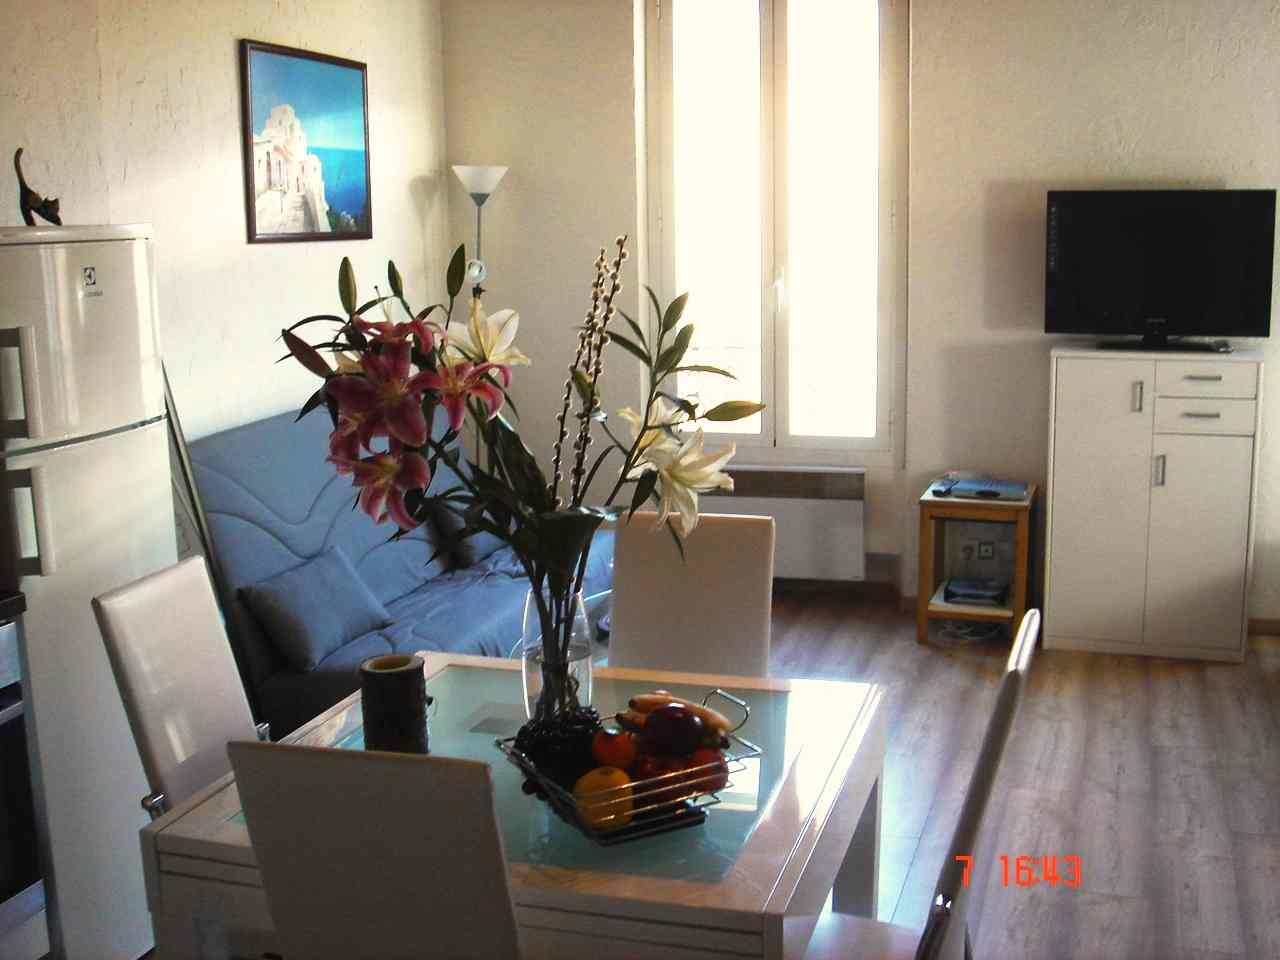 AMAZING,HOLIDAY RENTAL 39 M2 ONE BEDROOM APARTMENT IN THE HEART OF THE OLD TOWN OF ANTIBES,IN FRONT OF THE YACHT PORT!